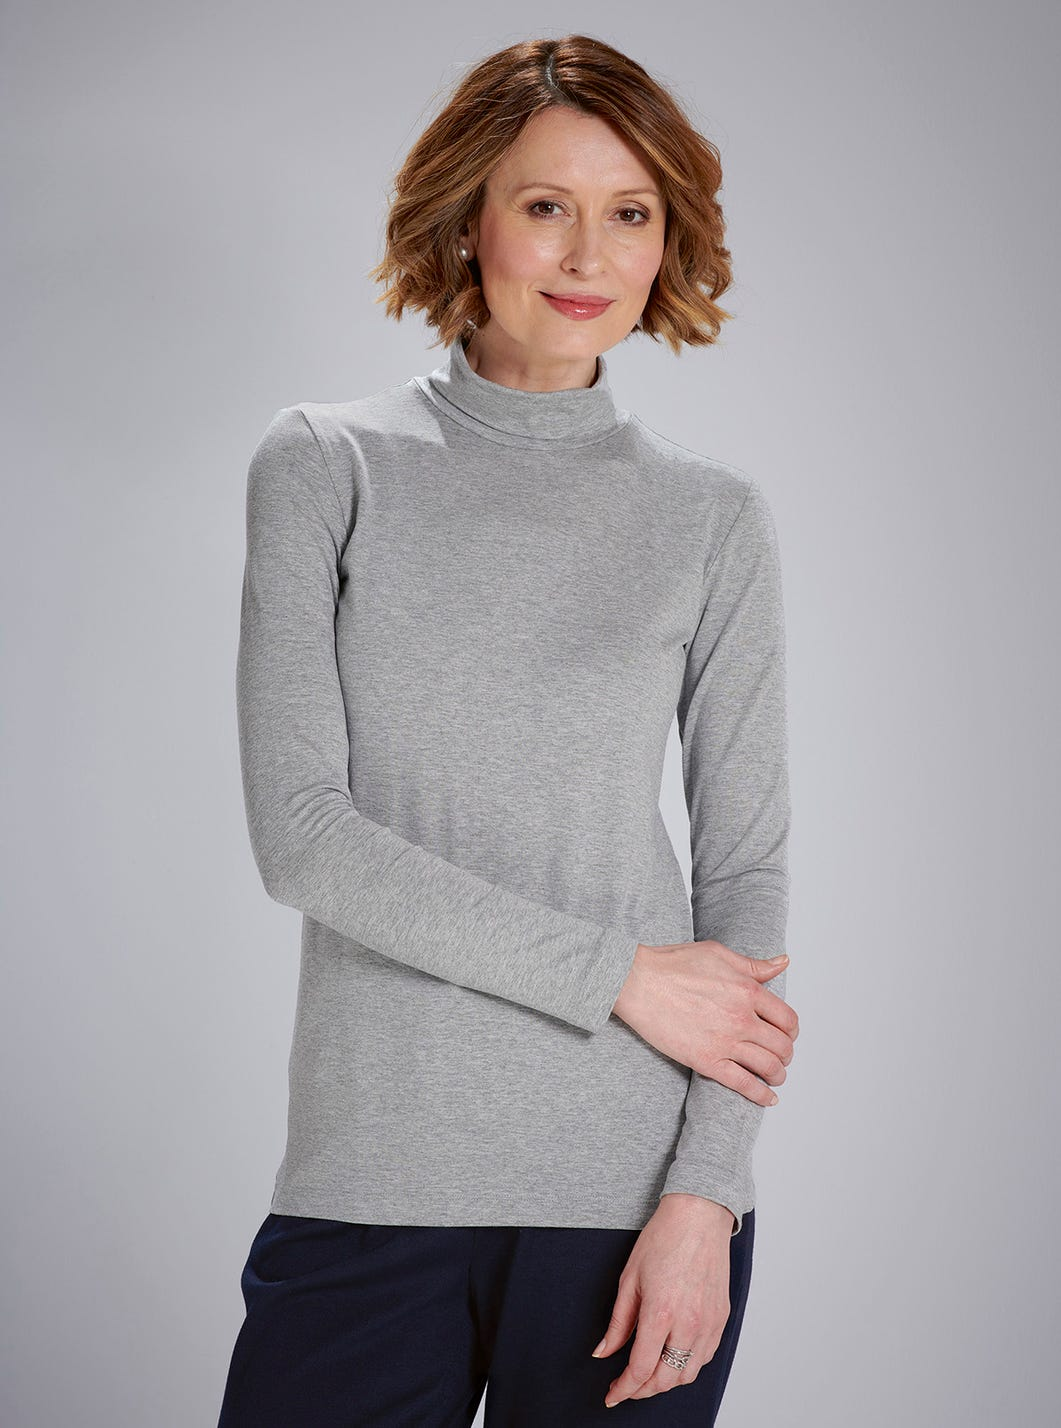 Silky Soft Roll-neck Top